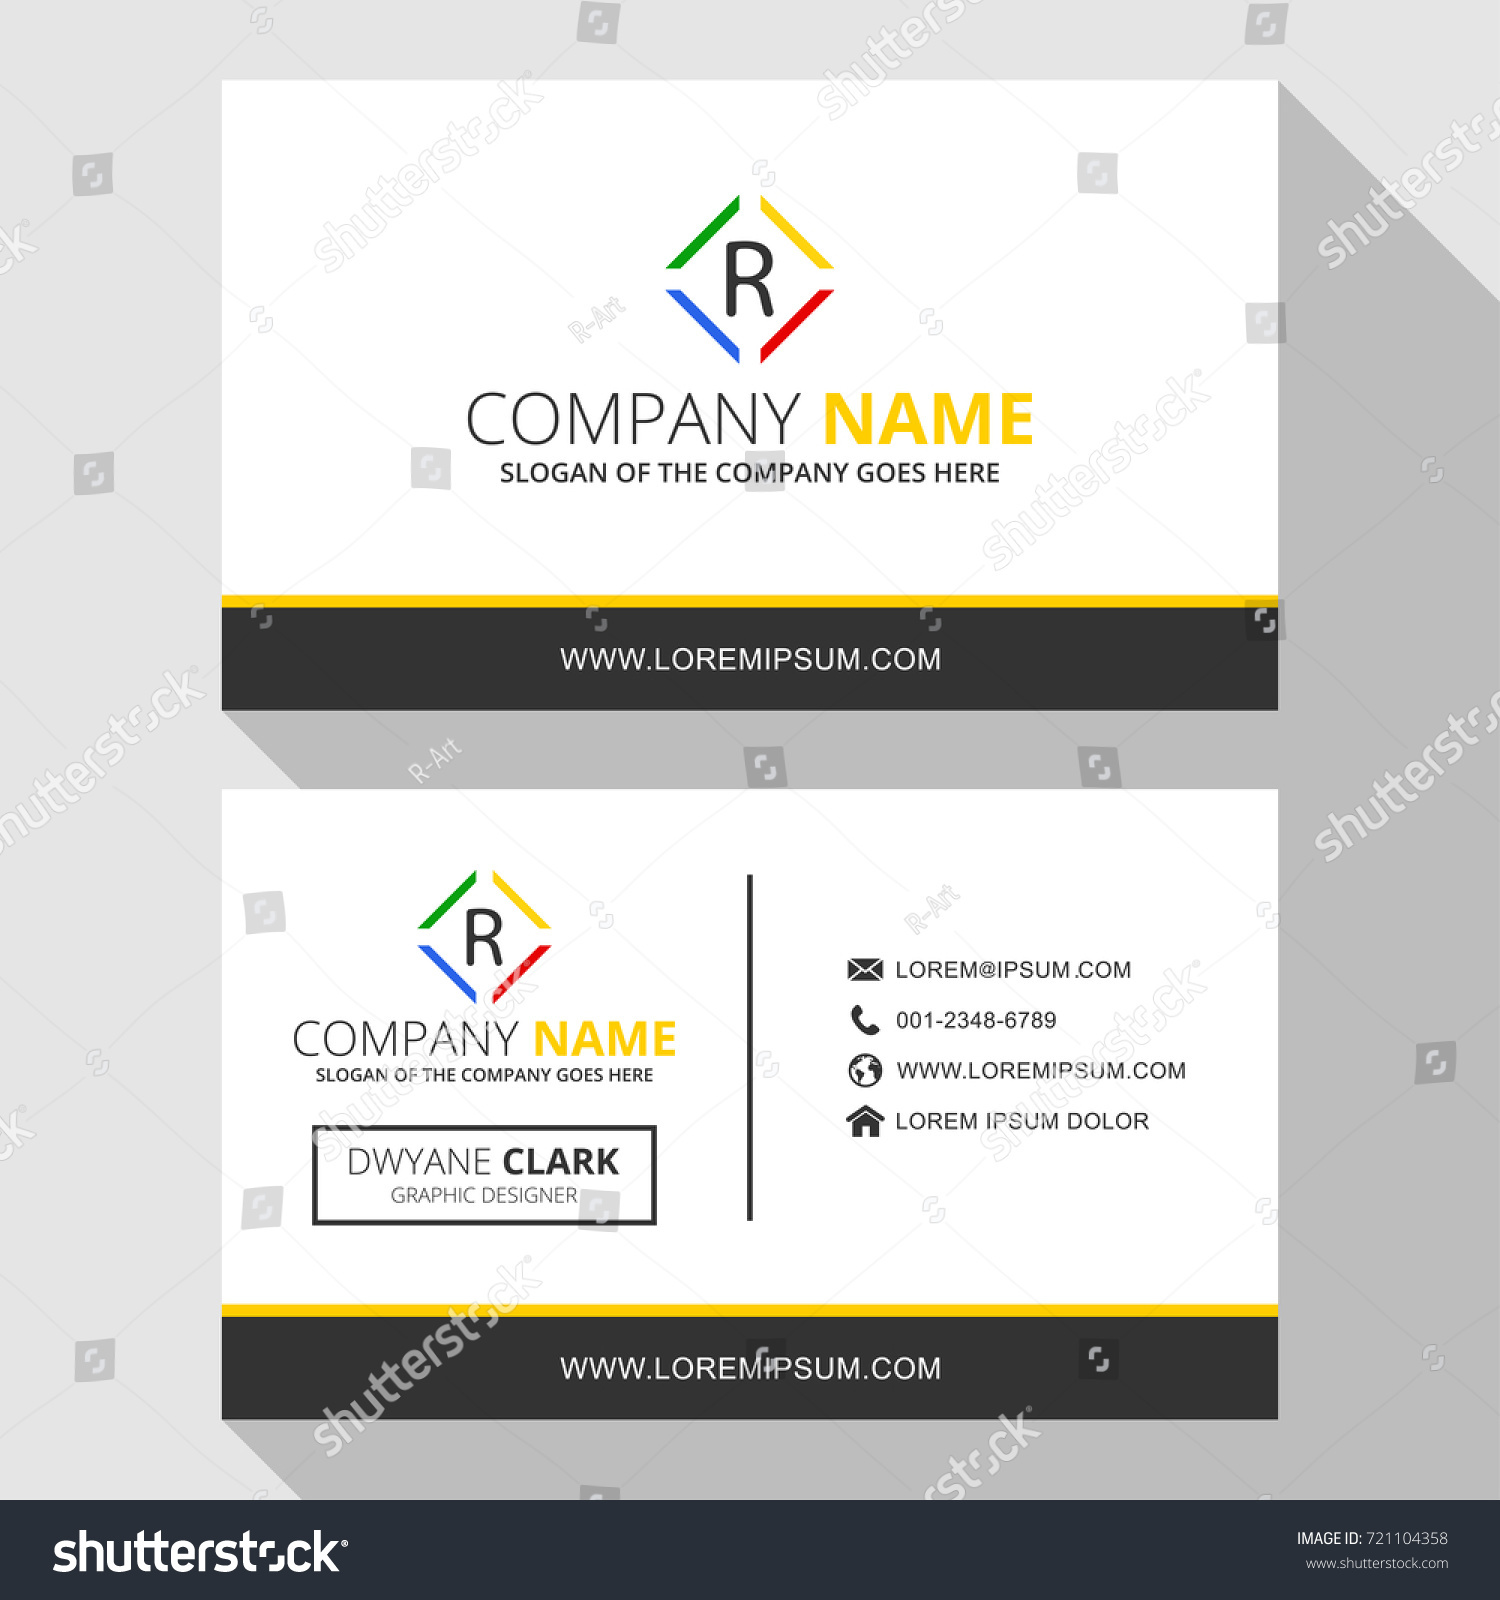 r simple business card logo icon stock vector r simple business card with logo